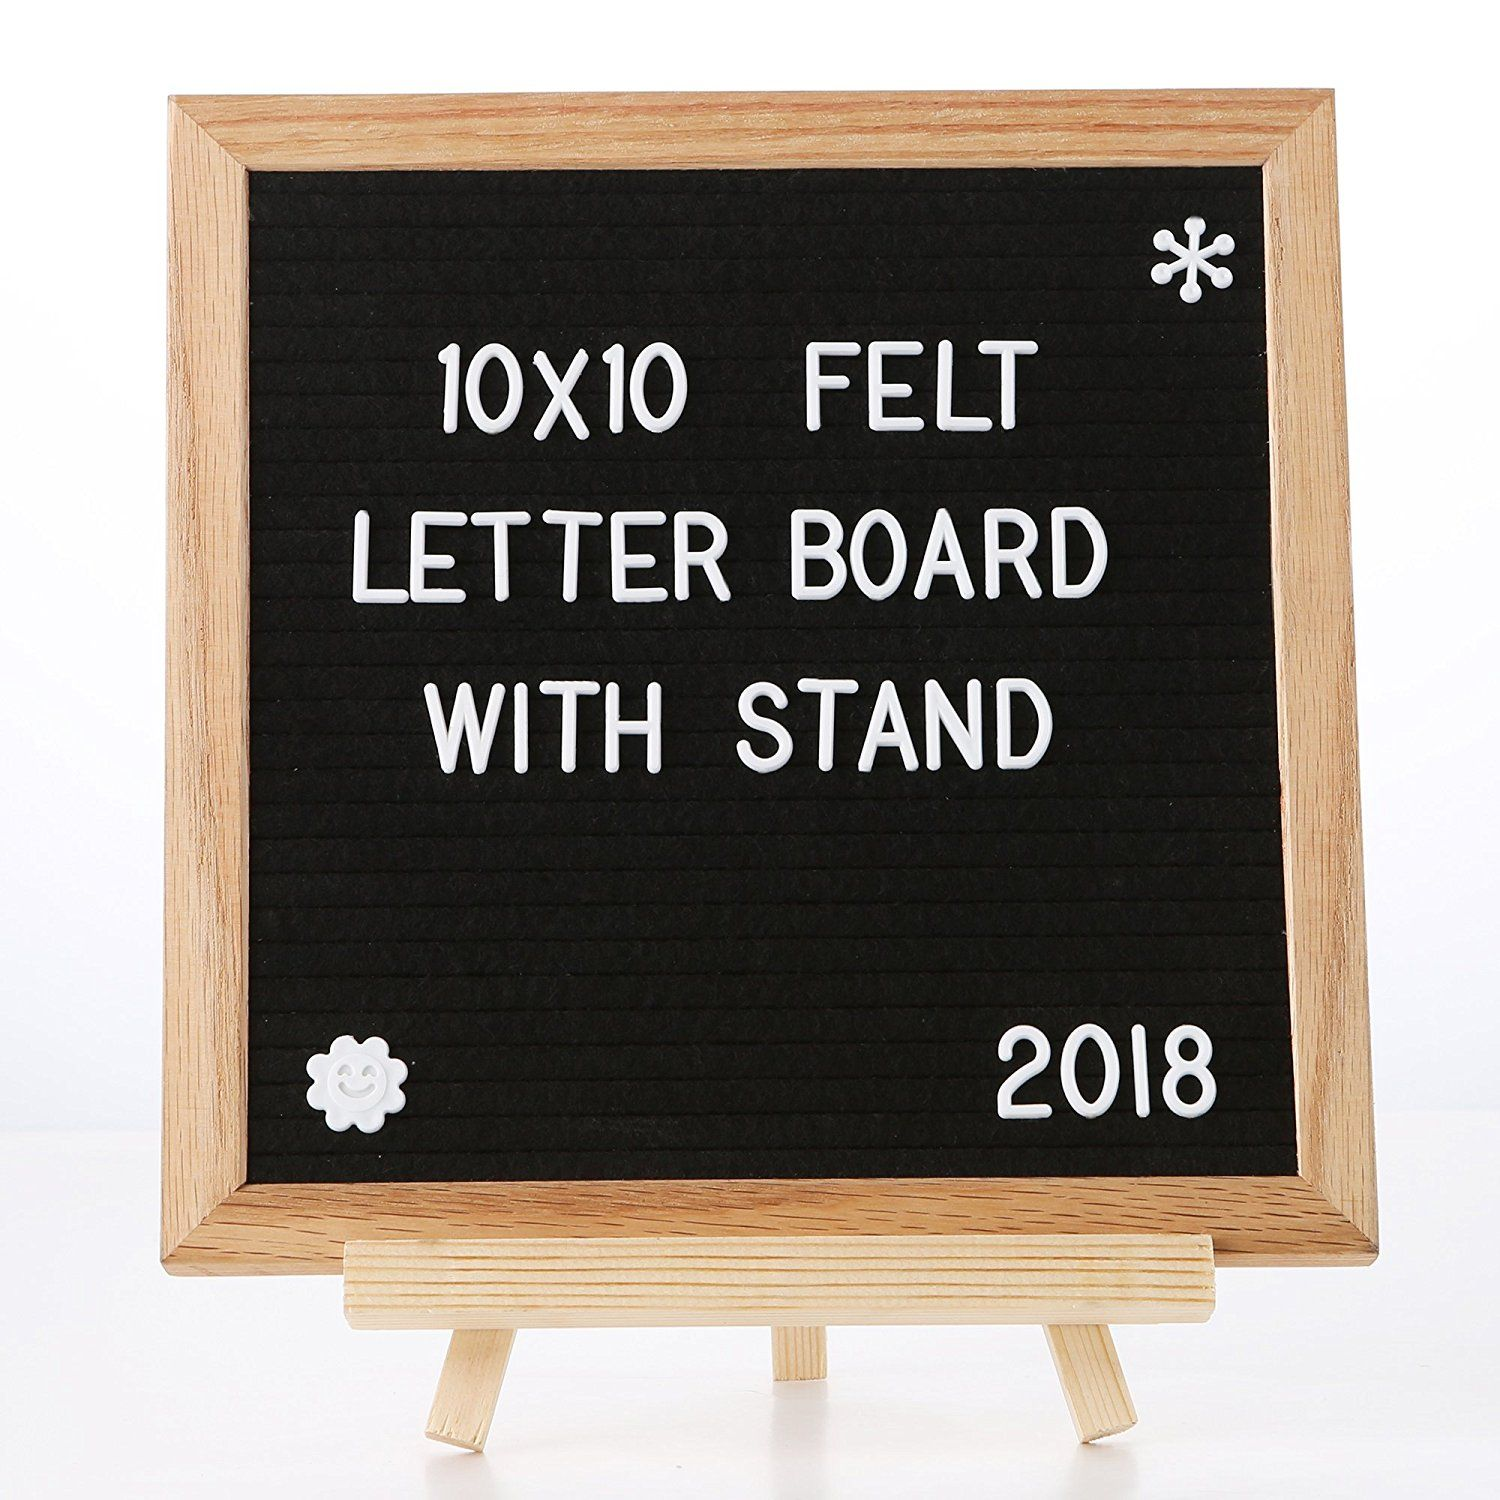 Amazon Com Spacecare Letter Board 10 X 10 Inches With 360pcs Letters Changeable Felt Letter Board For Office Re Felt Letter Board Felt Letters Letter Board